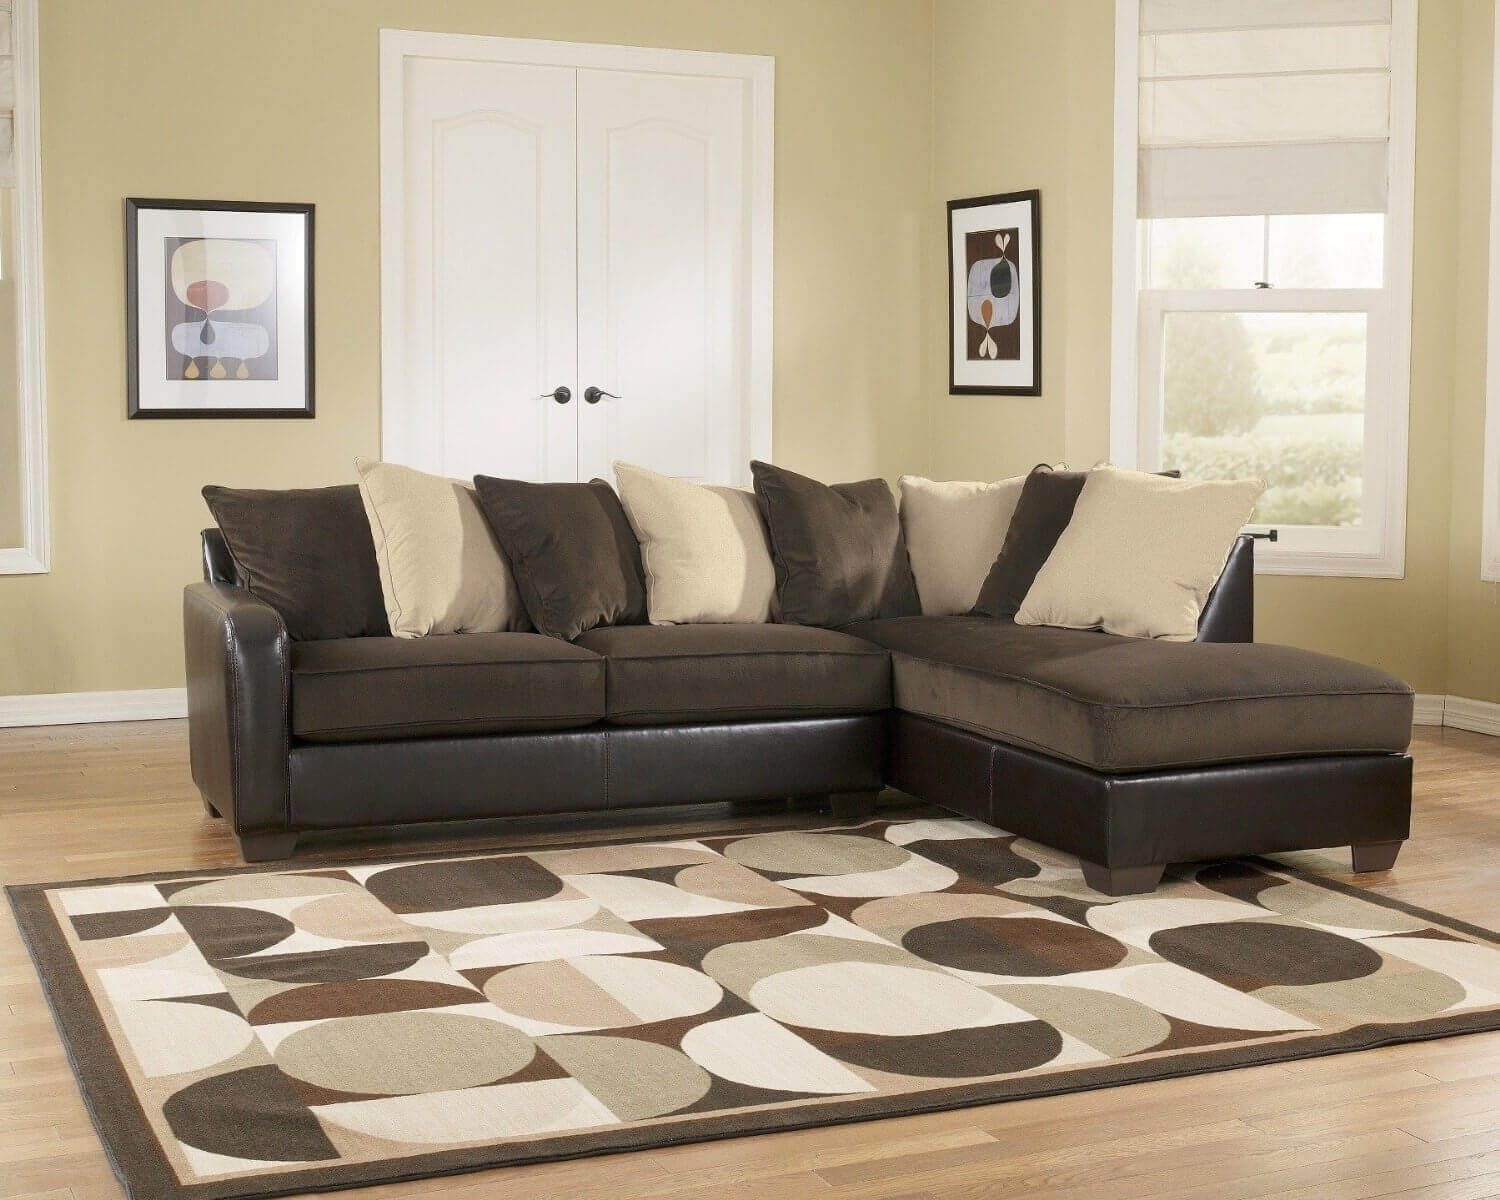 Chairs : 100 Beautiful Sectional Sofas Under 1000 With Eco Friendly For Eco Friendly Sectional Sofas (View 5 of 10)